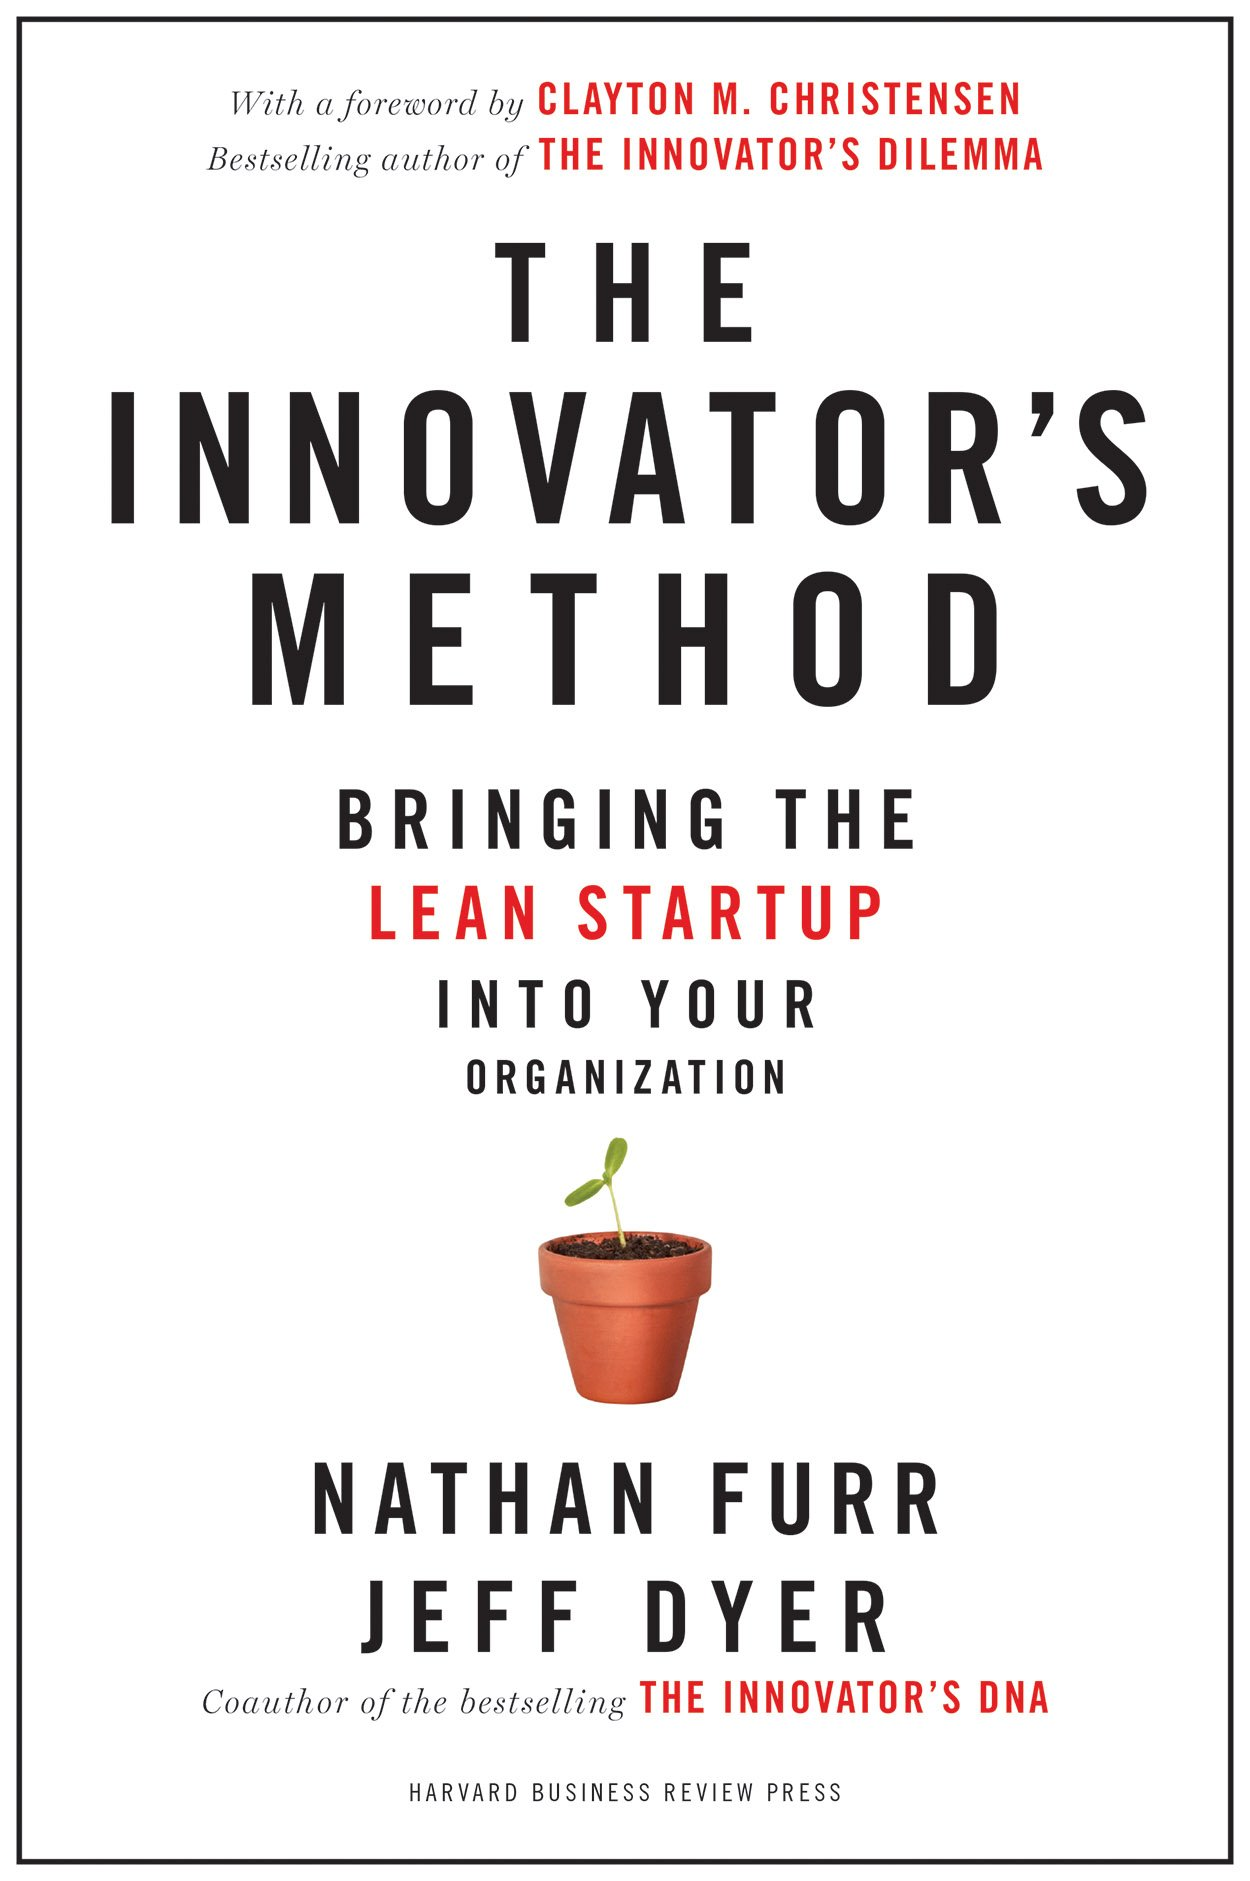 Innovators Method Bringing Start up Organization